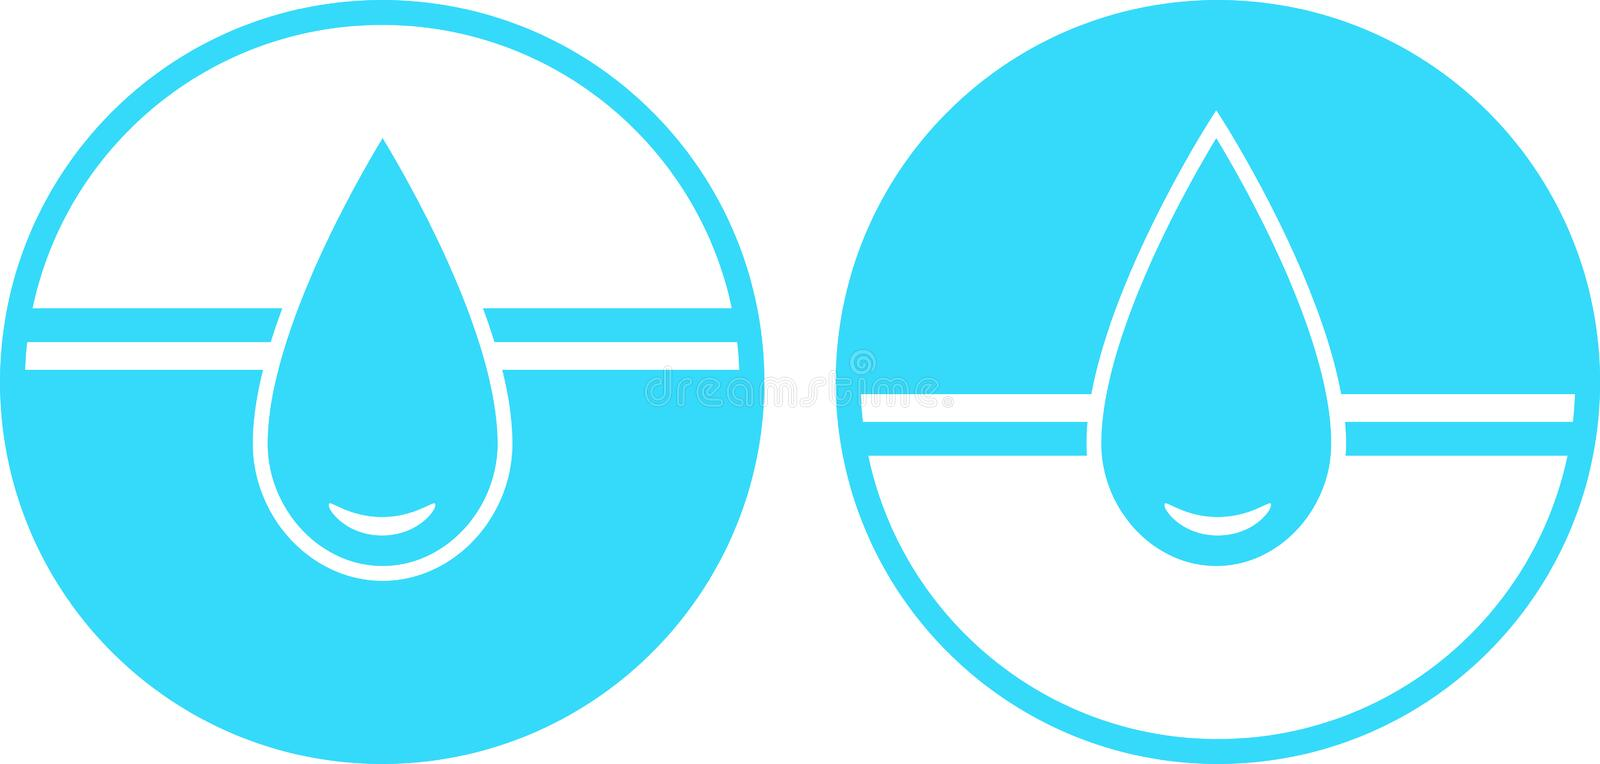 Download Set of water drop sign stock vector. Image of image, cool - 27350591